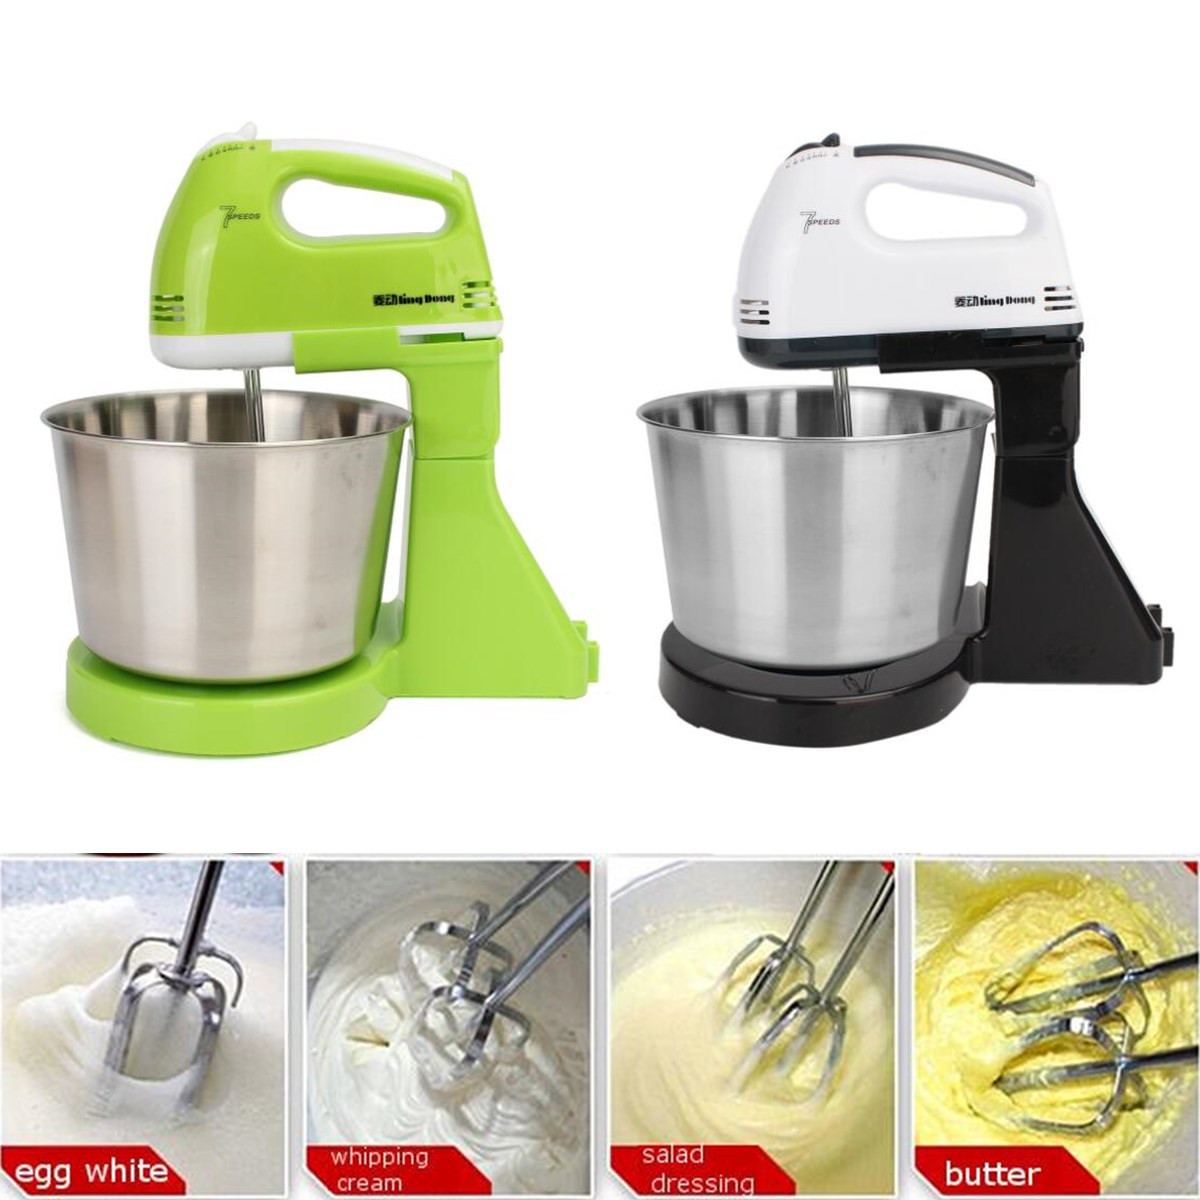 7 Speed Egg Beater Electric Kitchen Food Mixer Table &Stand Cake Dough Mixer Handheld Blender Baking Whipping Cream Machine